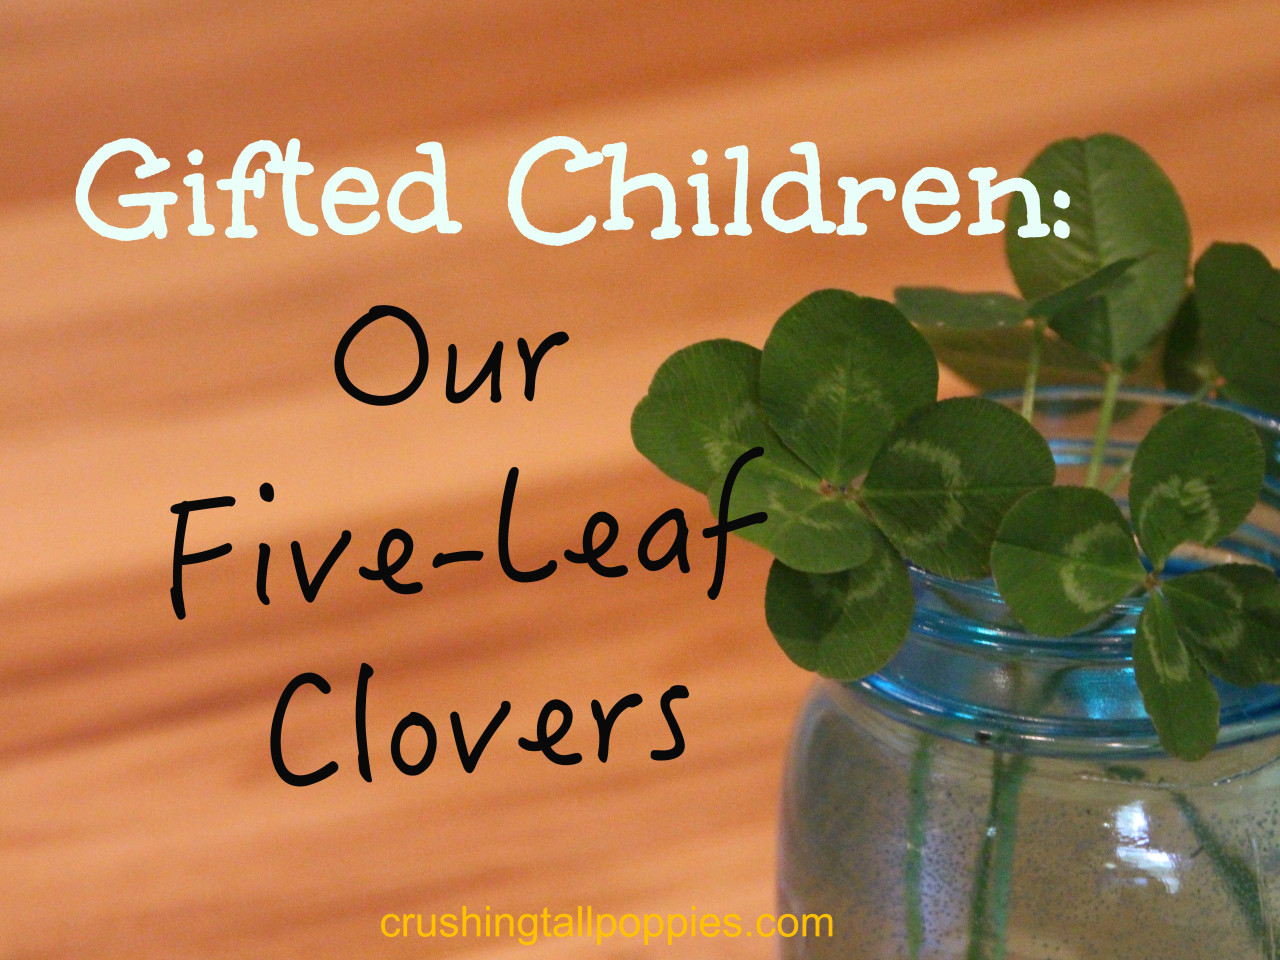 Gifted Children Our Five-Leaf Clovers